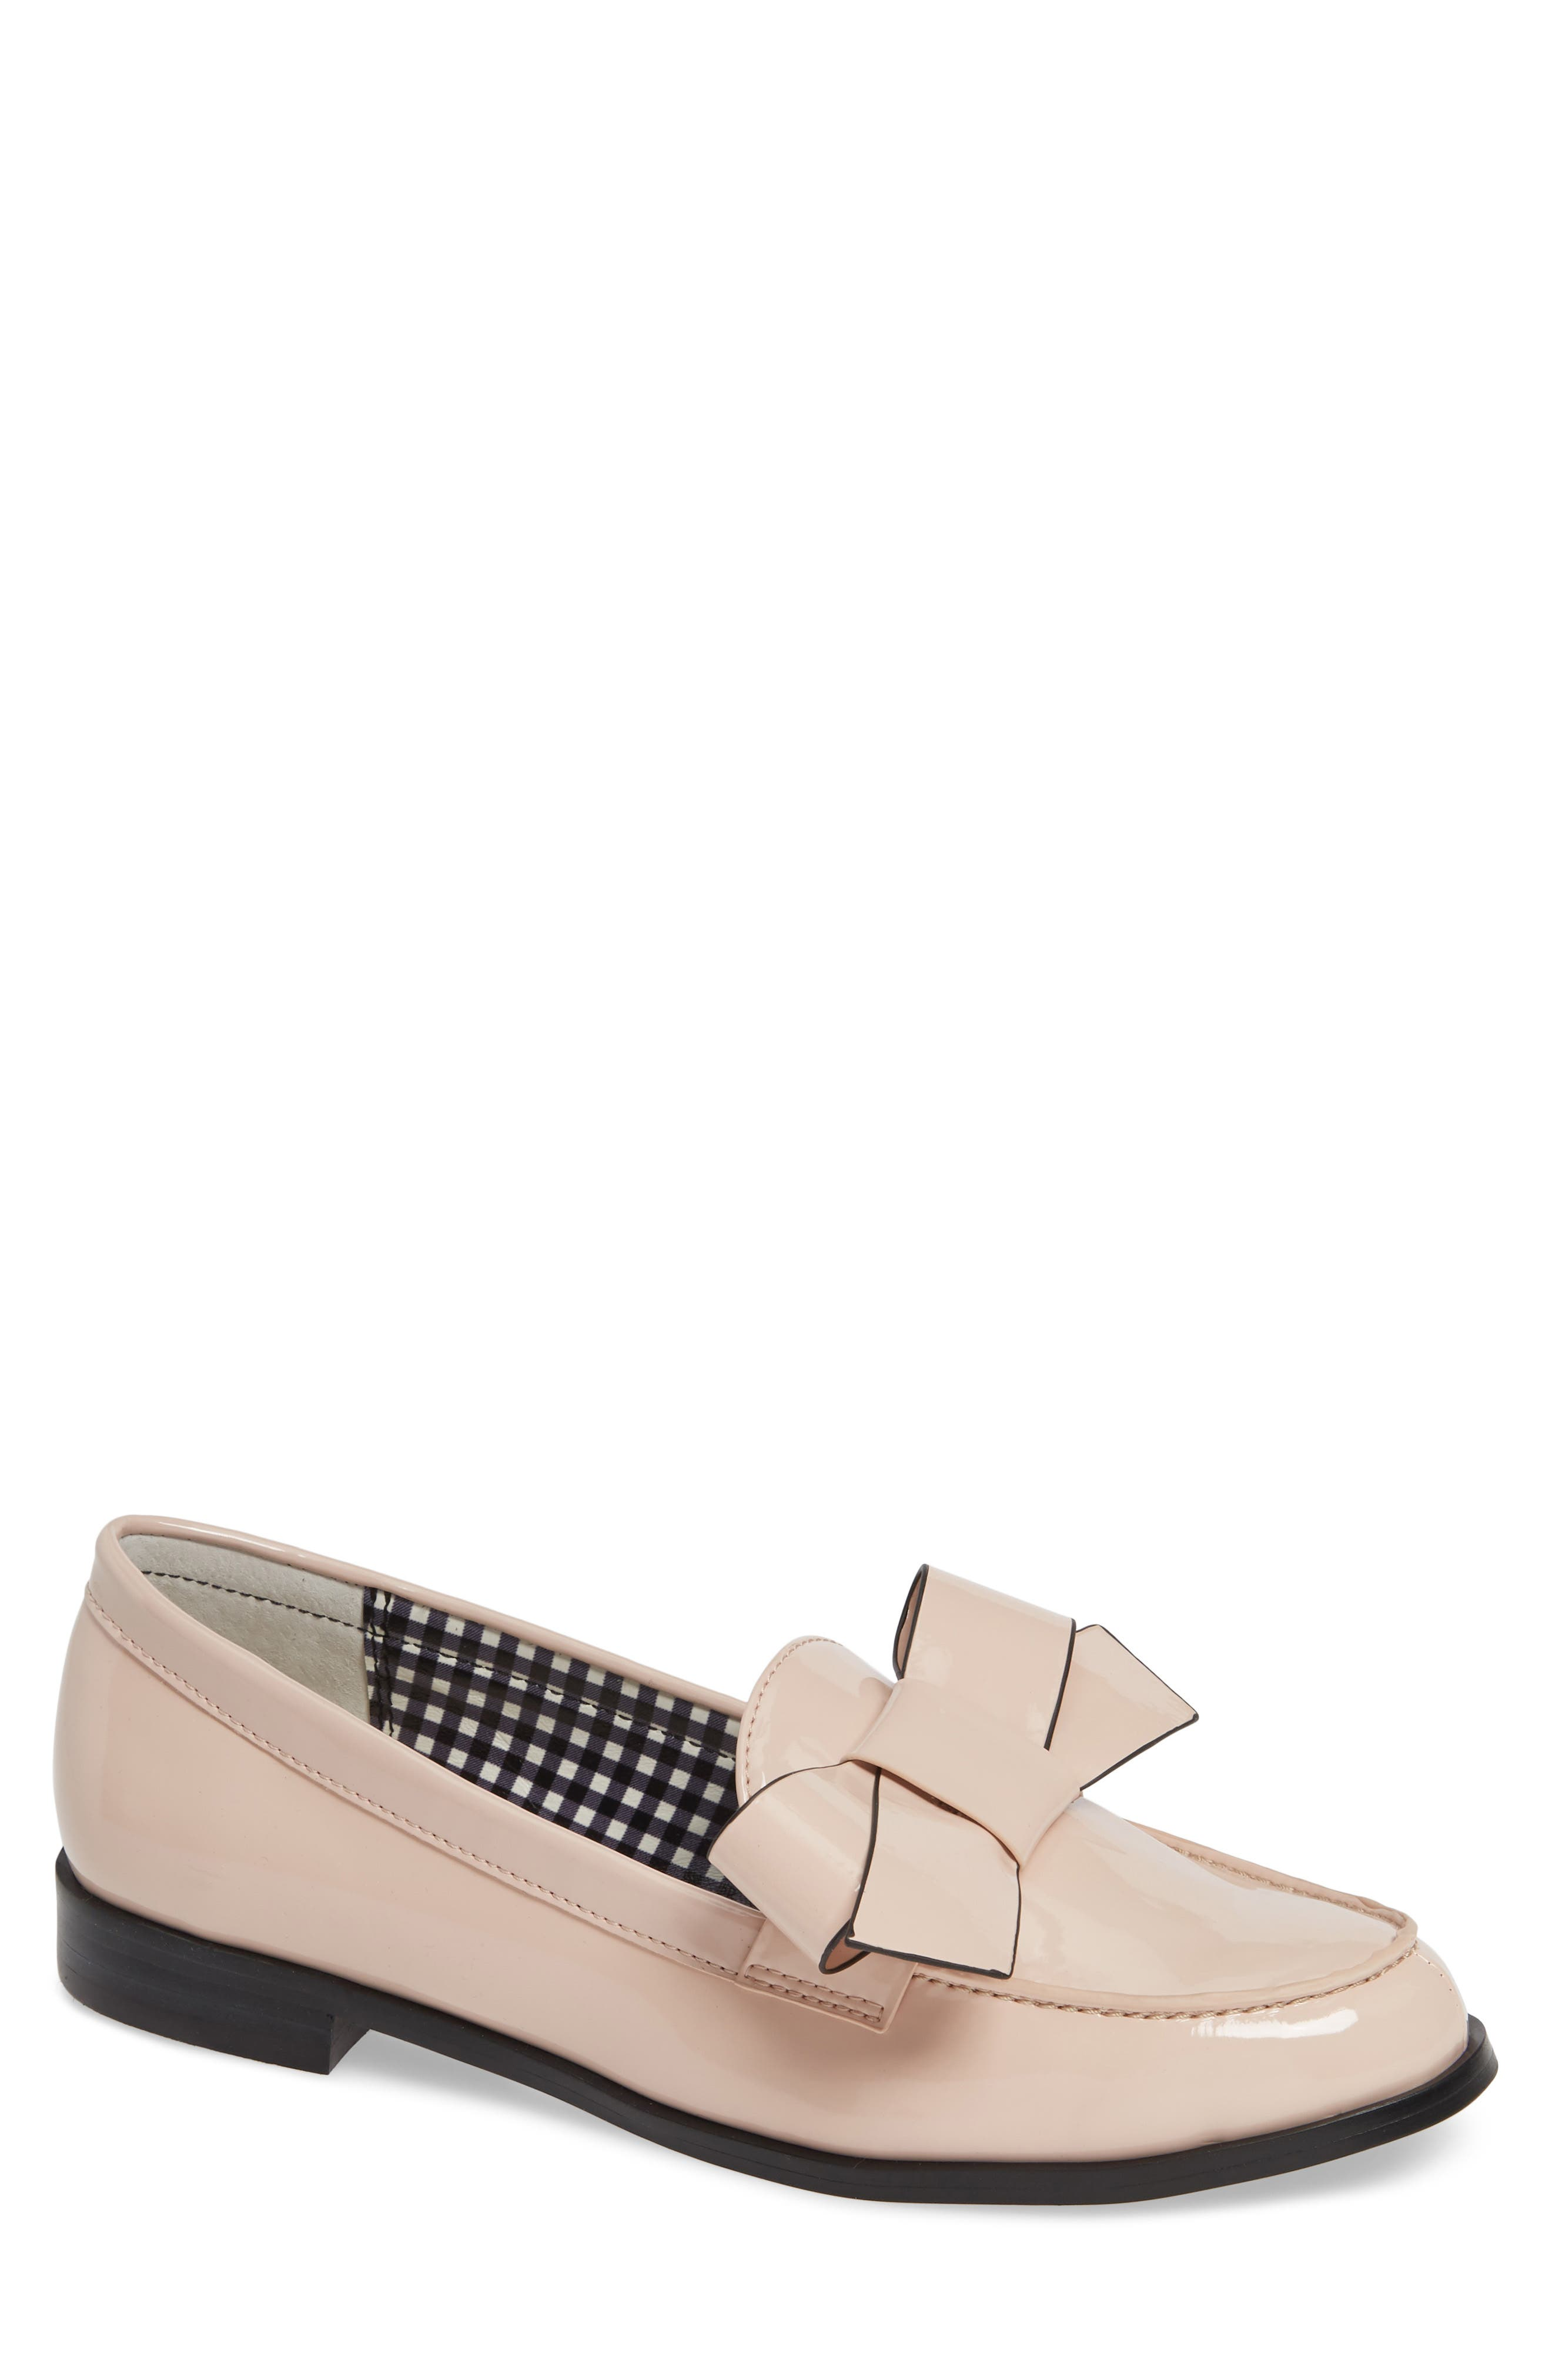 1901 Reenie Loafer, Main, color, BLUSH PATENT PU